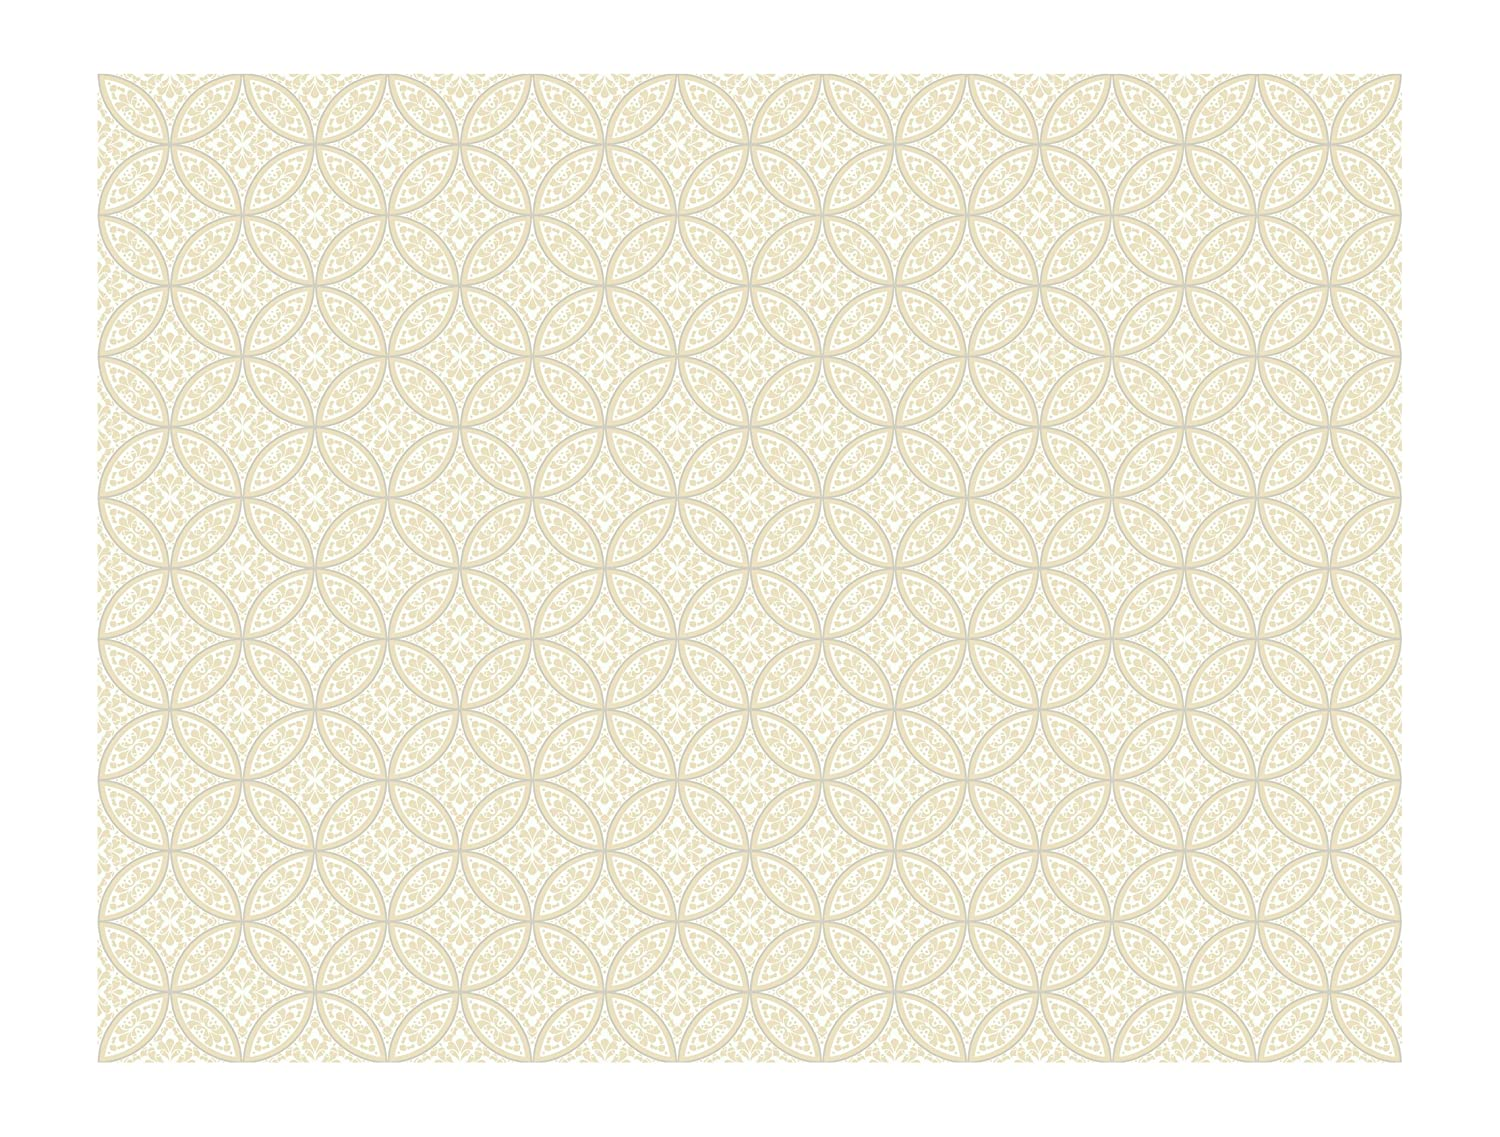 York Wallcoverings AP7432SMP Silhouettes Lacey Interlocking Circles Wallpaper Memo Sample 8-Inch x 10-Inch